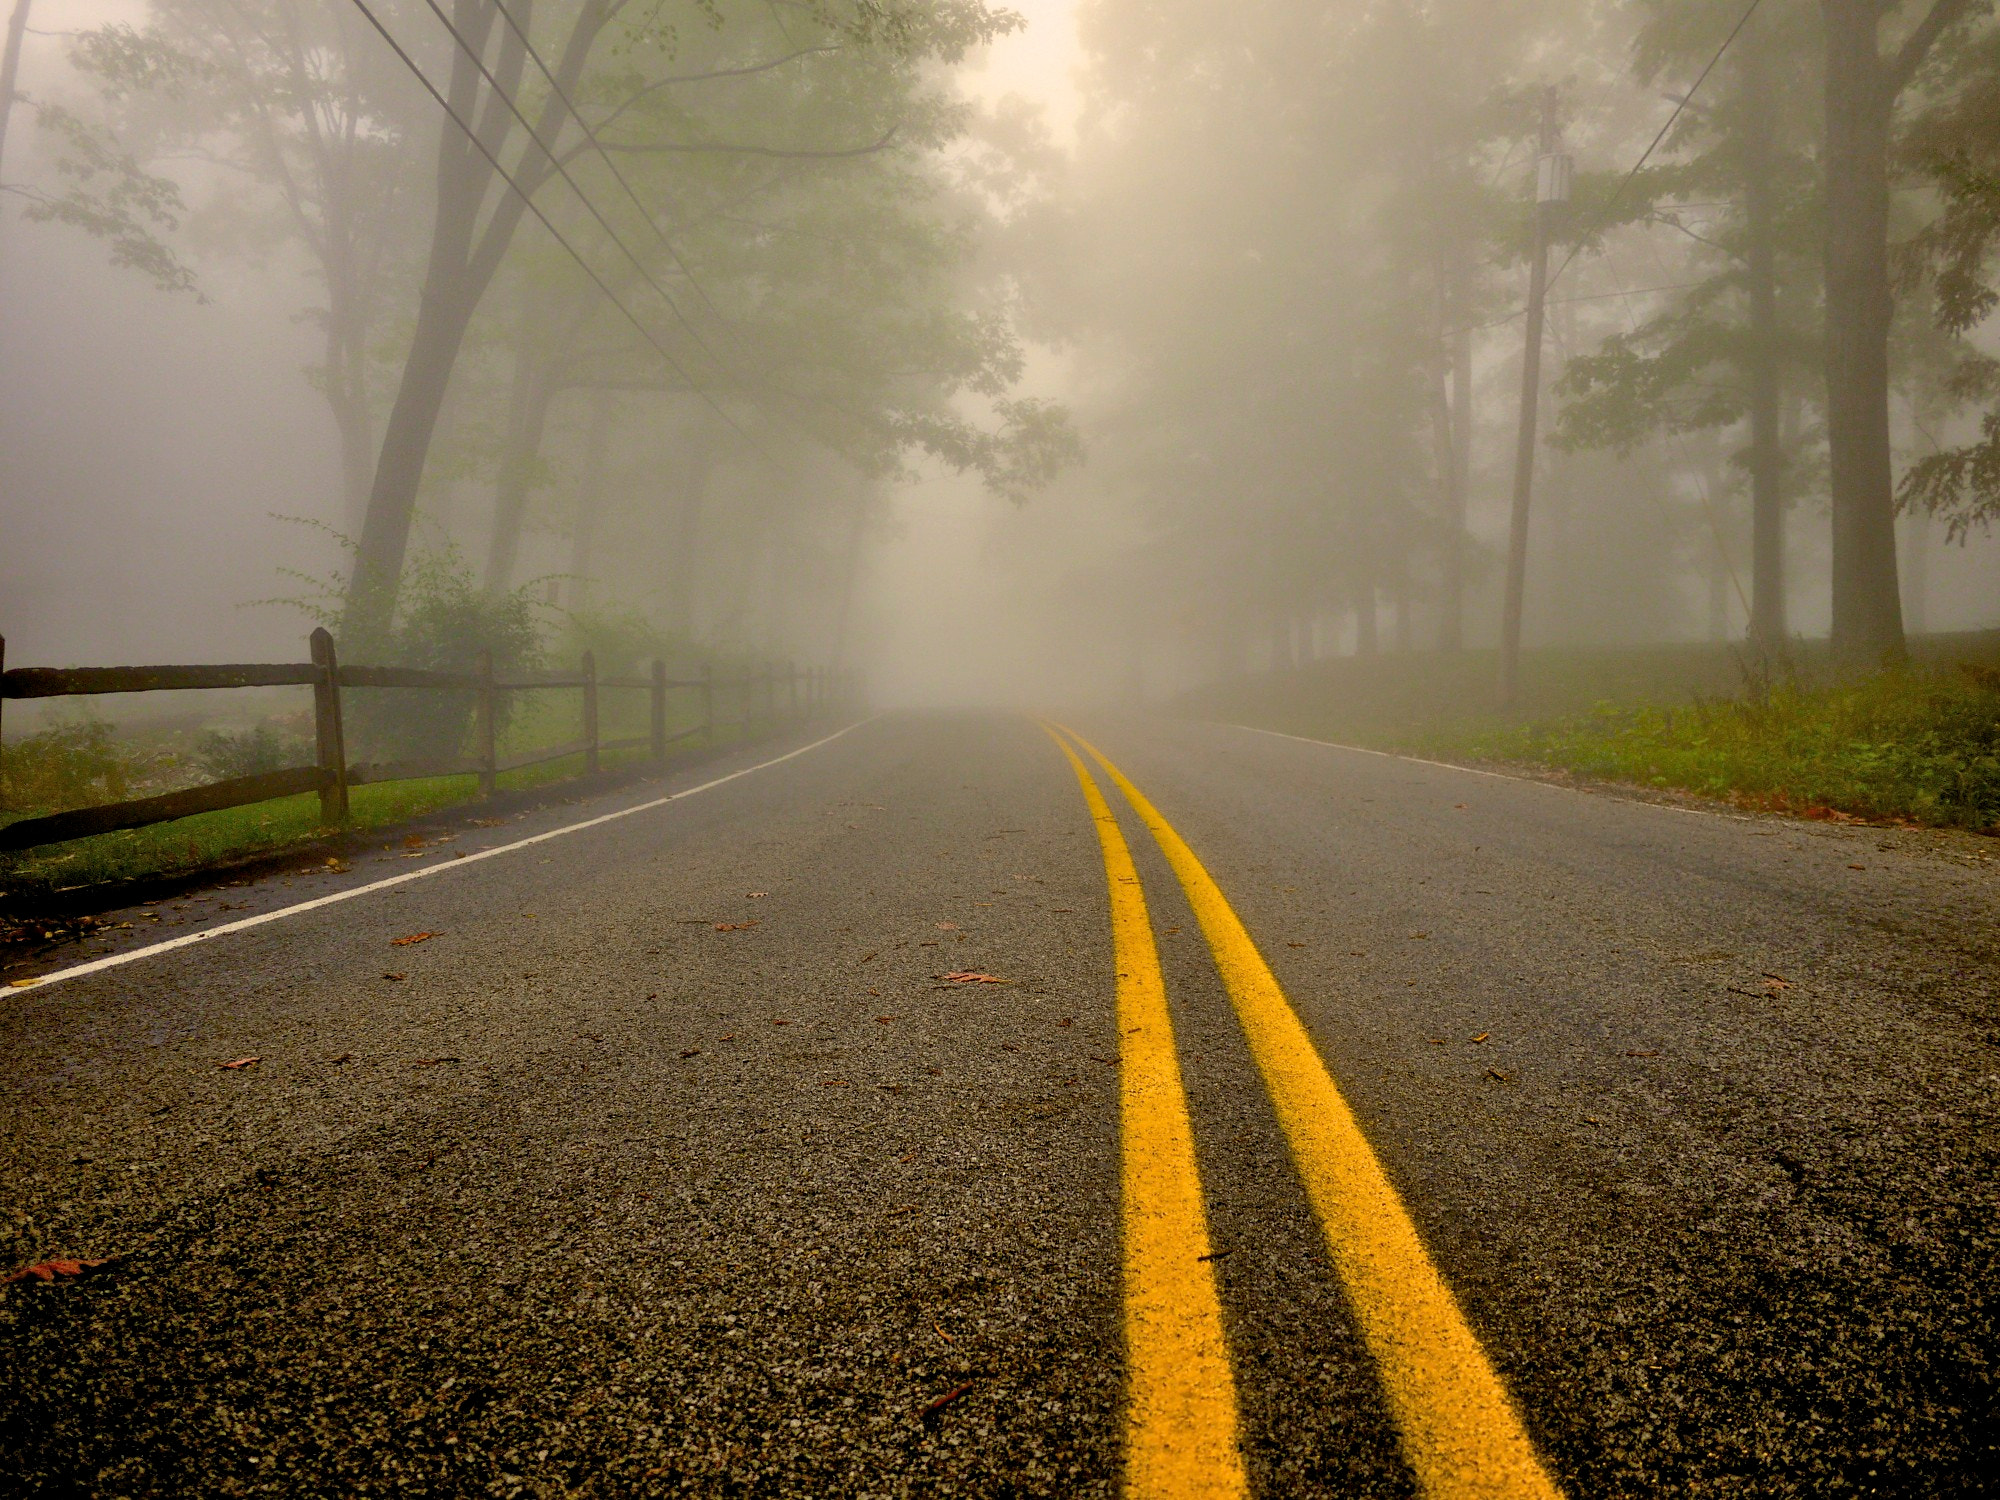 Photograph Foggy Road by Ron Lovelace on 500px